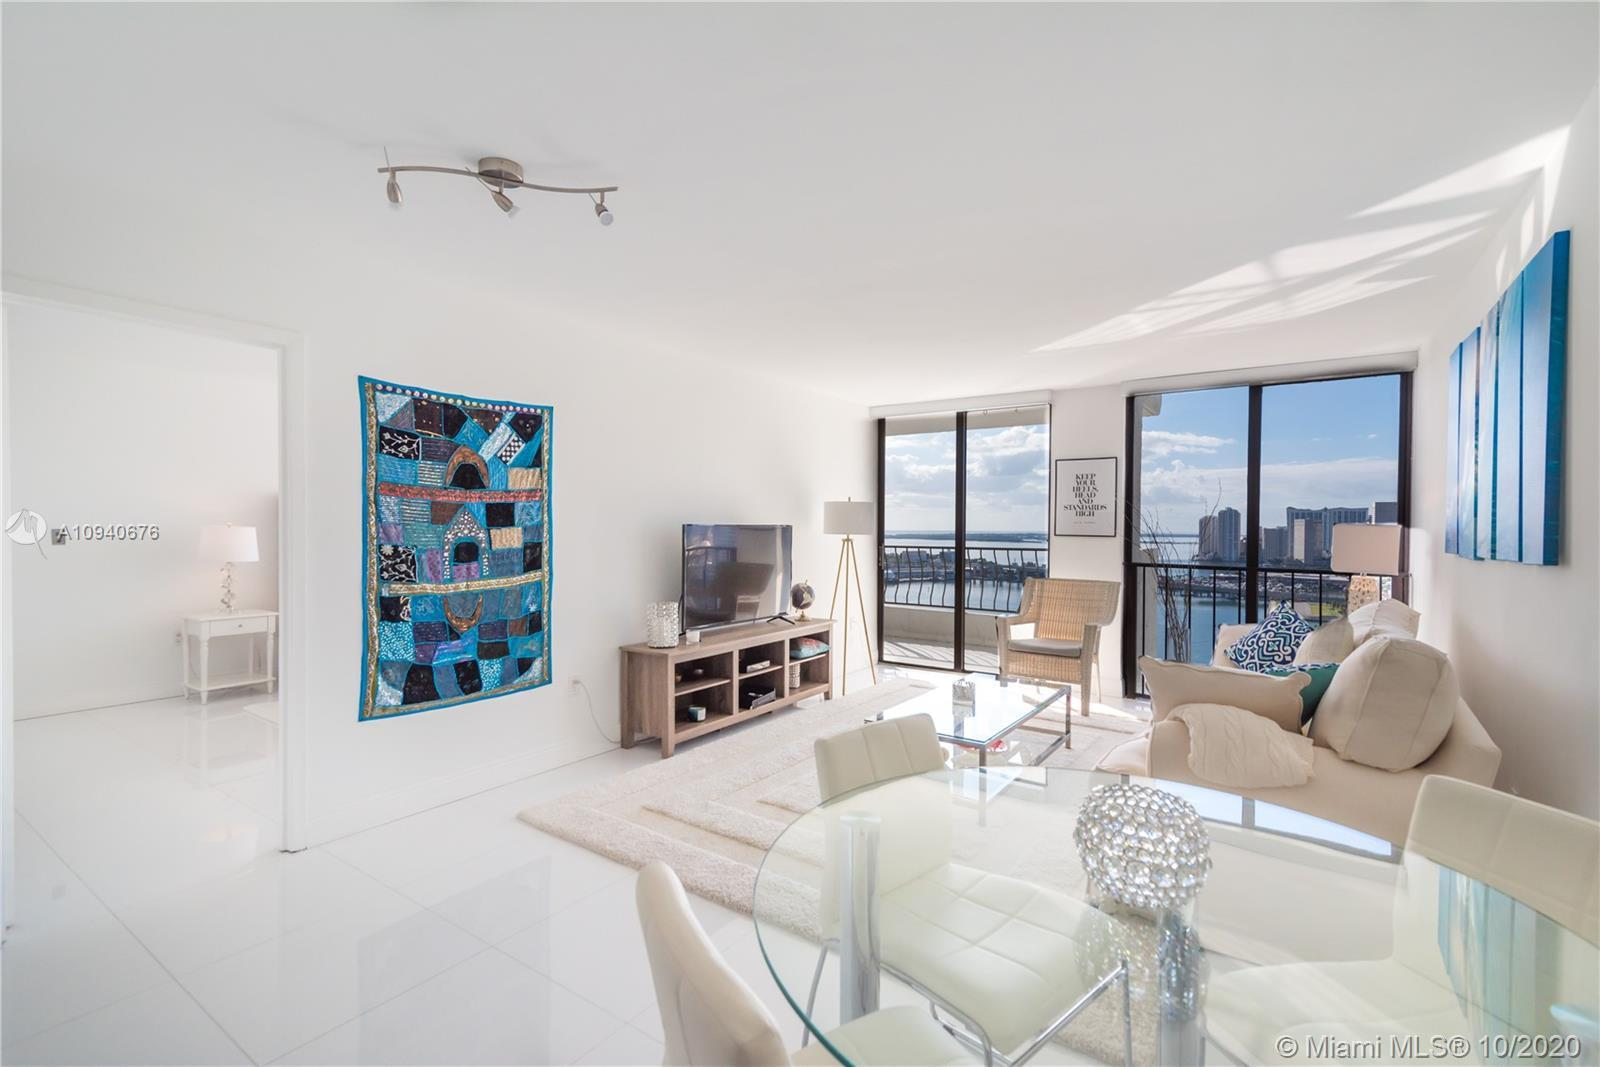 Breathtaking unobstructed bay view nicely decorated PH. Spacious Floor Plan. Completely renovated. H